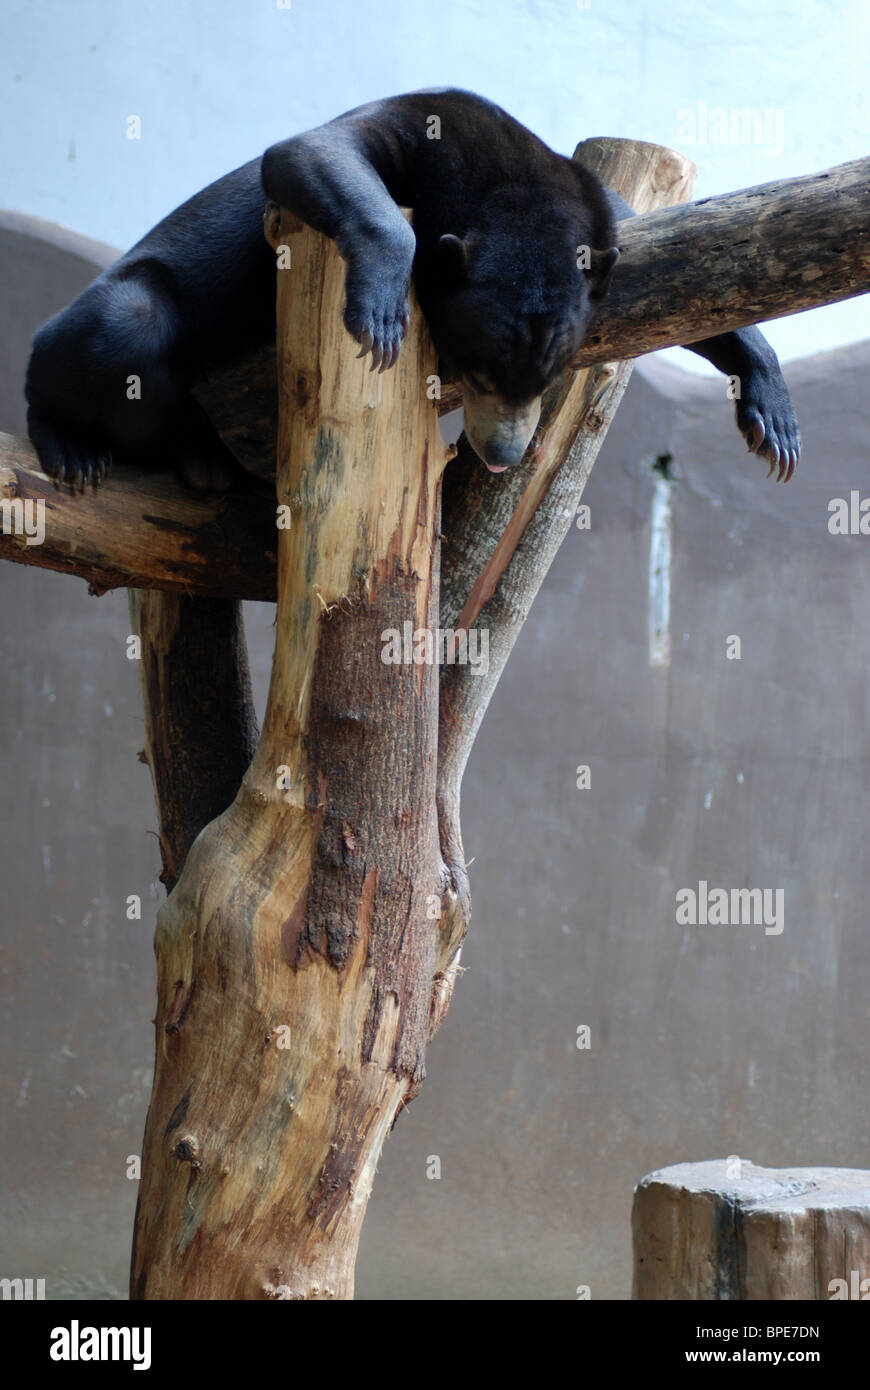 A Bear Sleeping - Stock Image